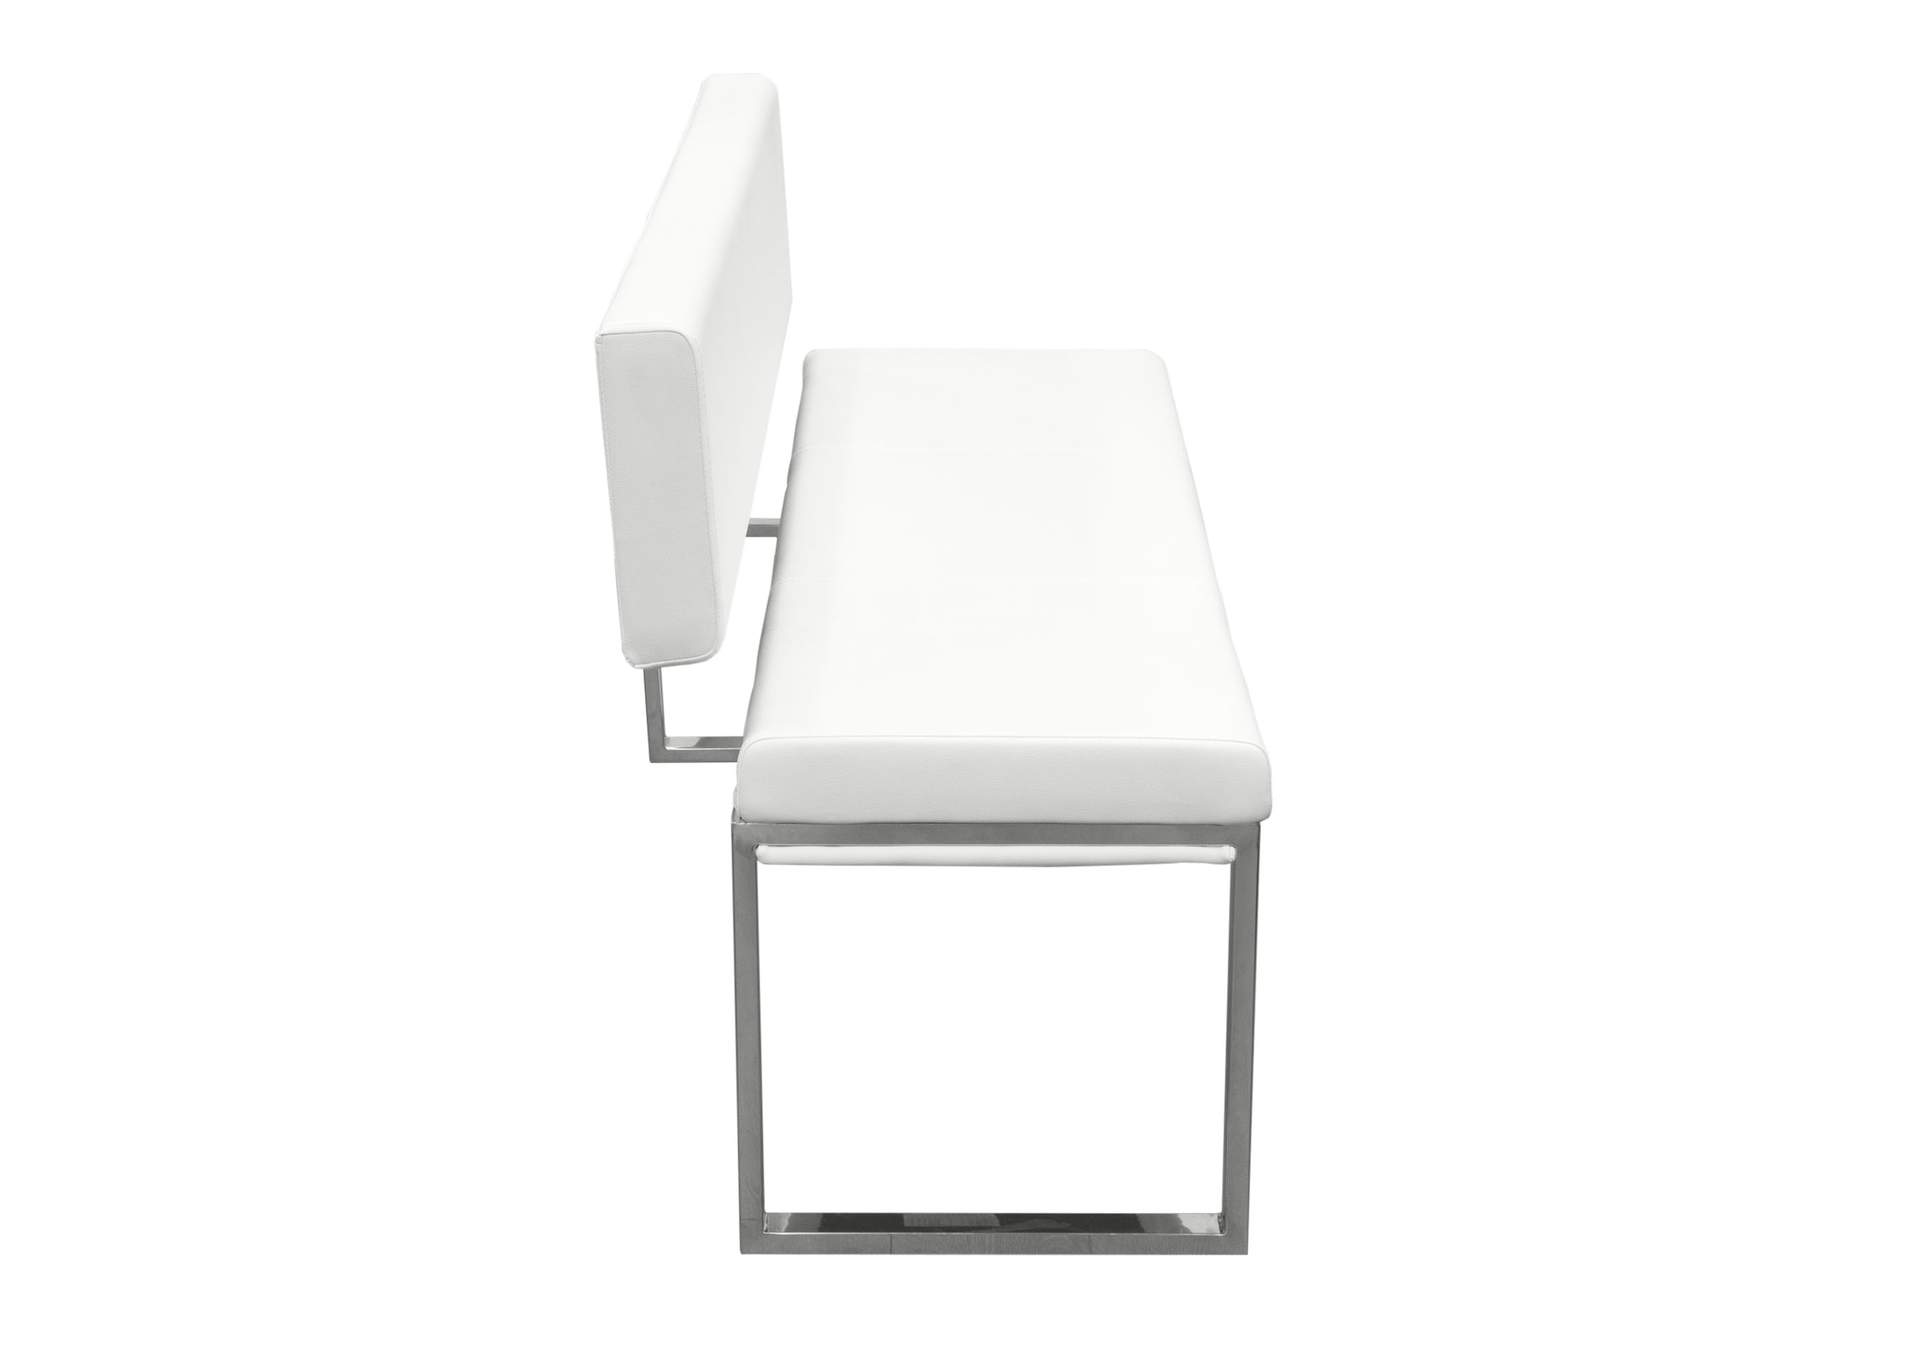 Knox White Bench w/ Back & Stainless Steel Frame,Diamond Sofa